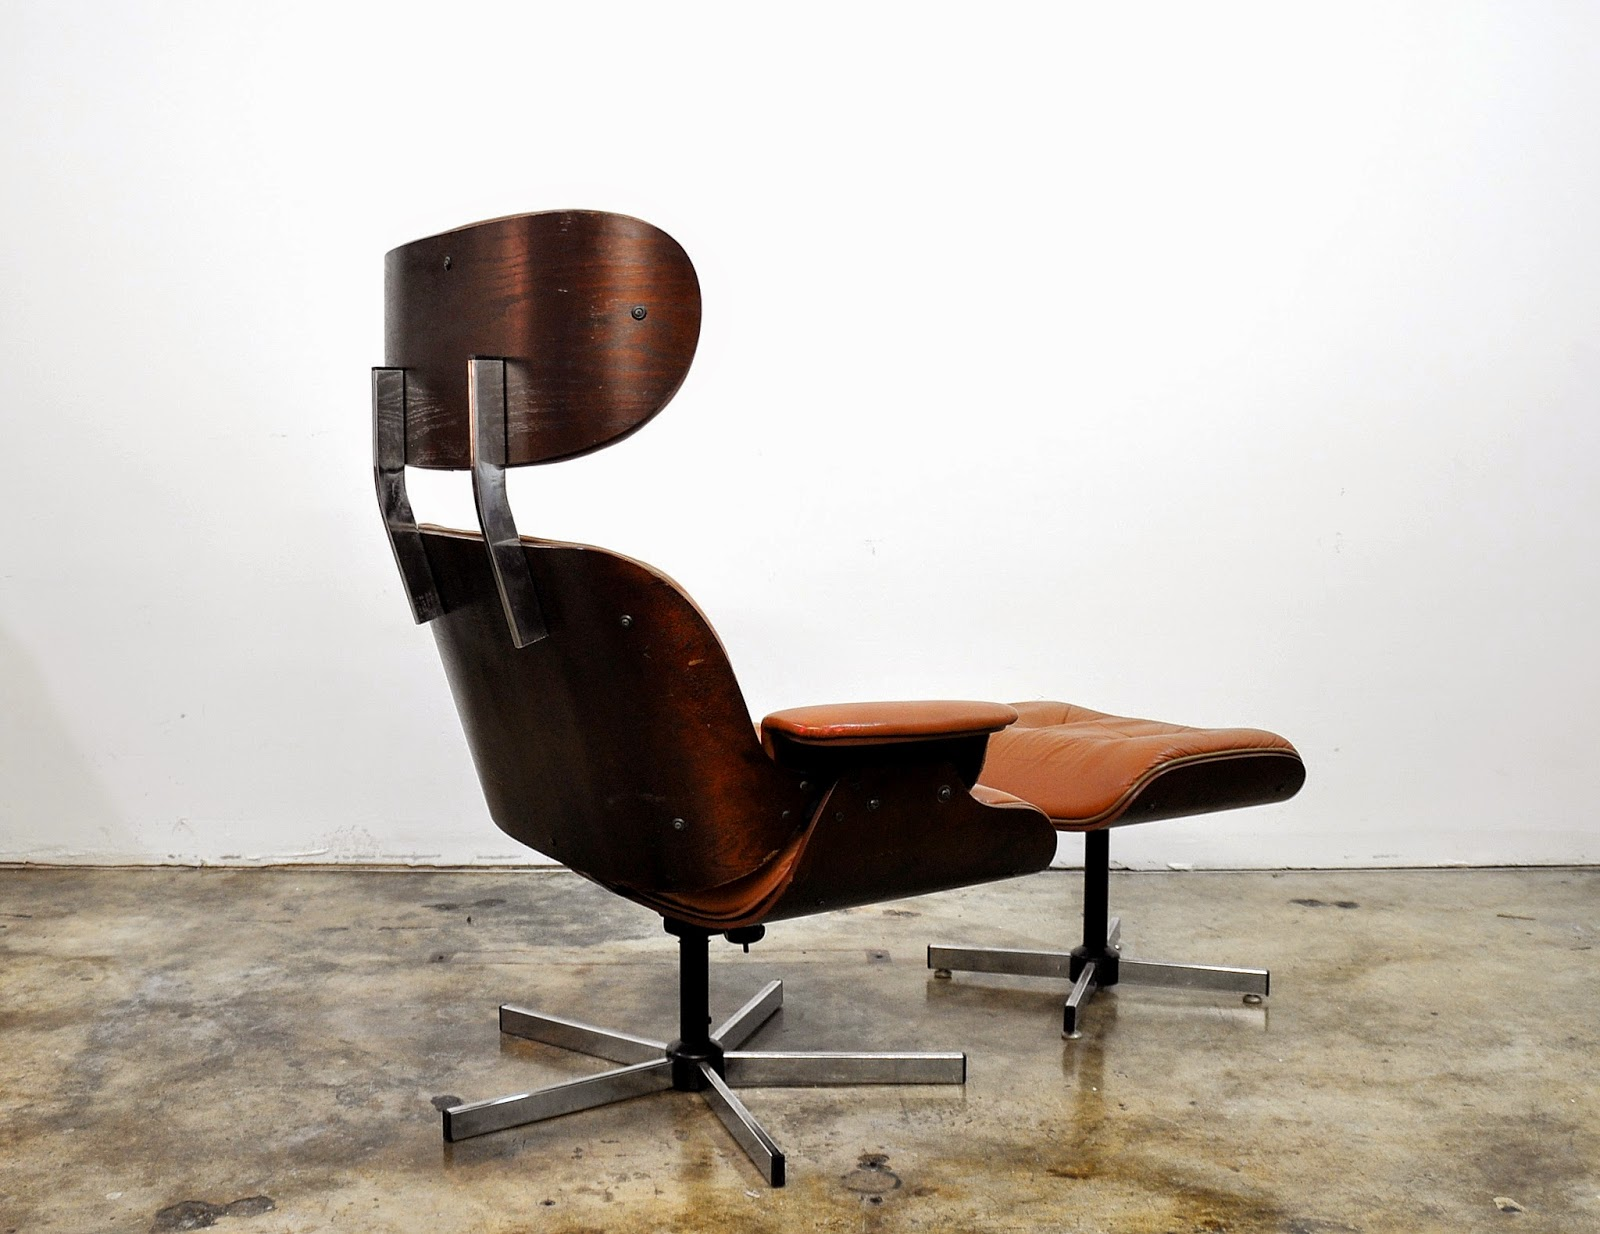 Selig Eames Chair Resin Pool Chairs Selectmid Century Modern Design Finds March 2015